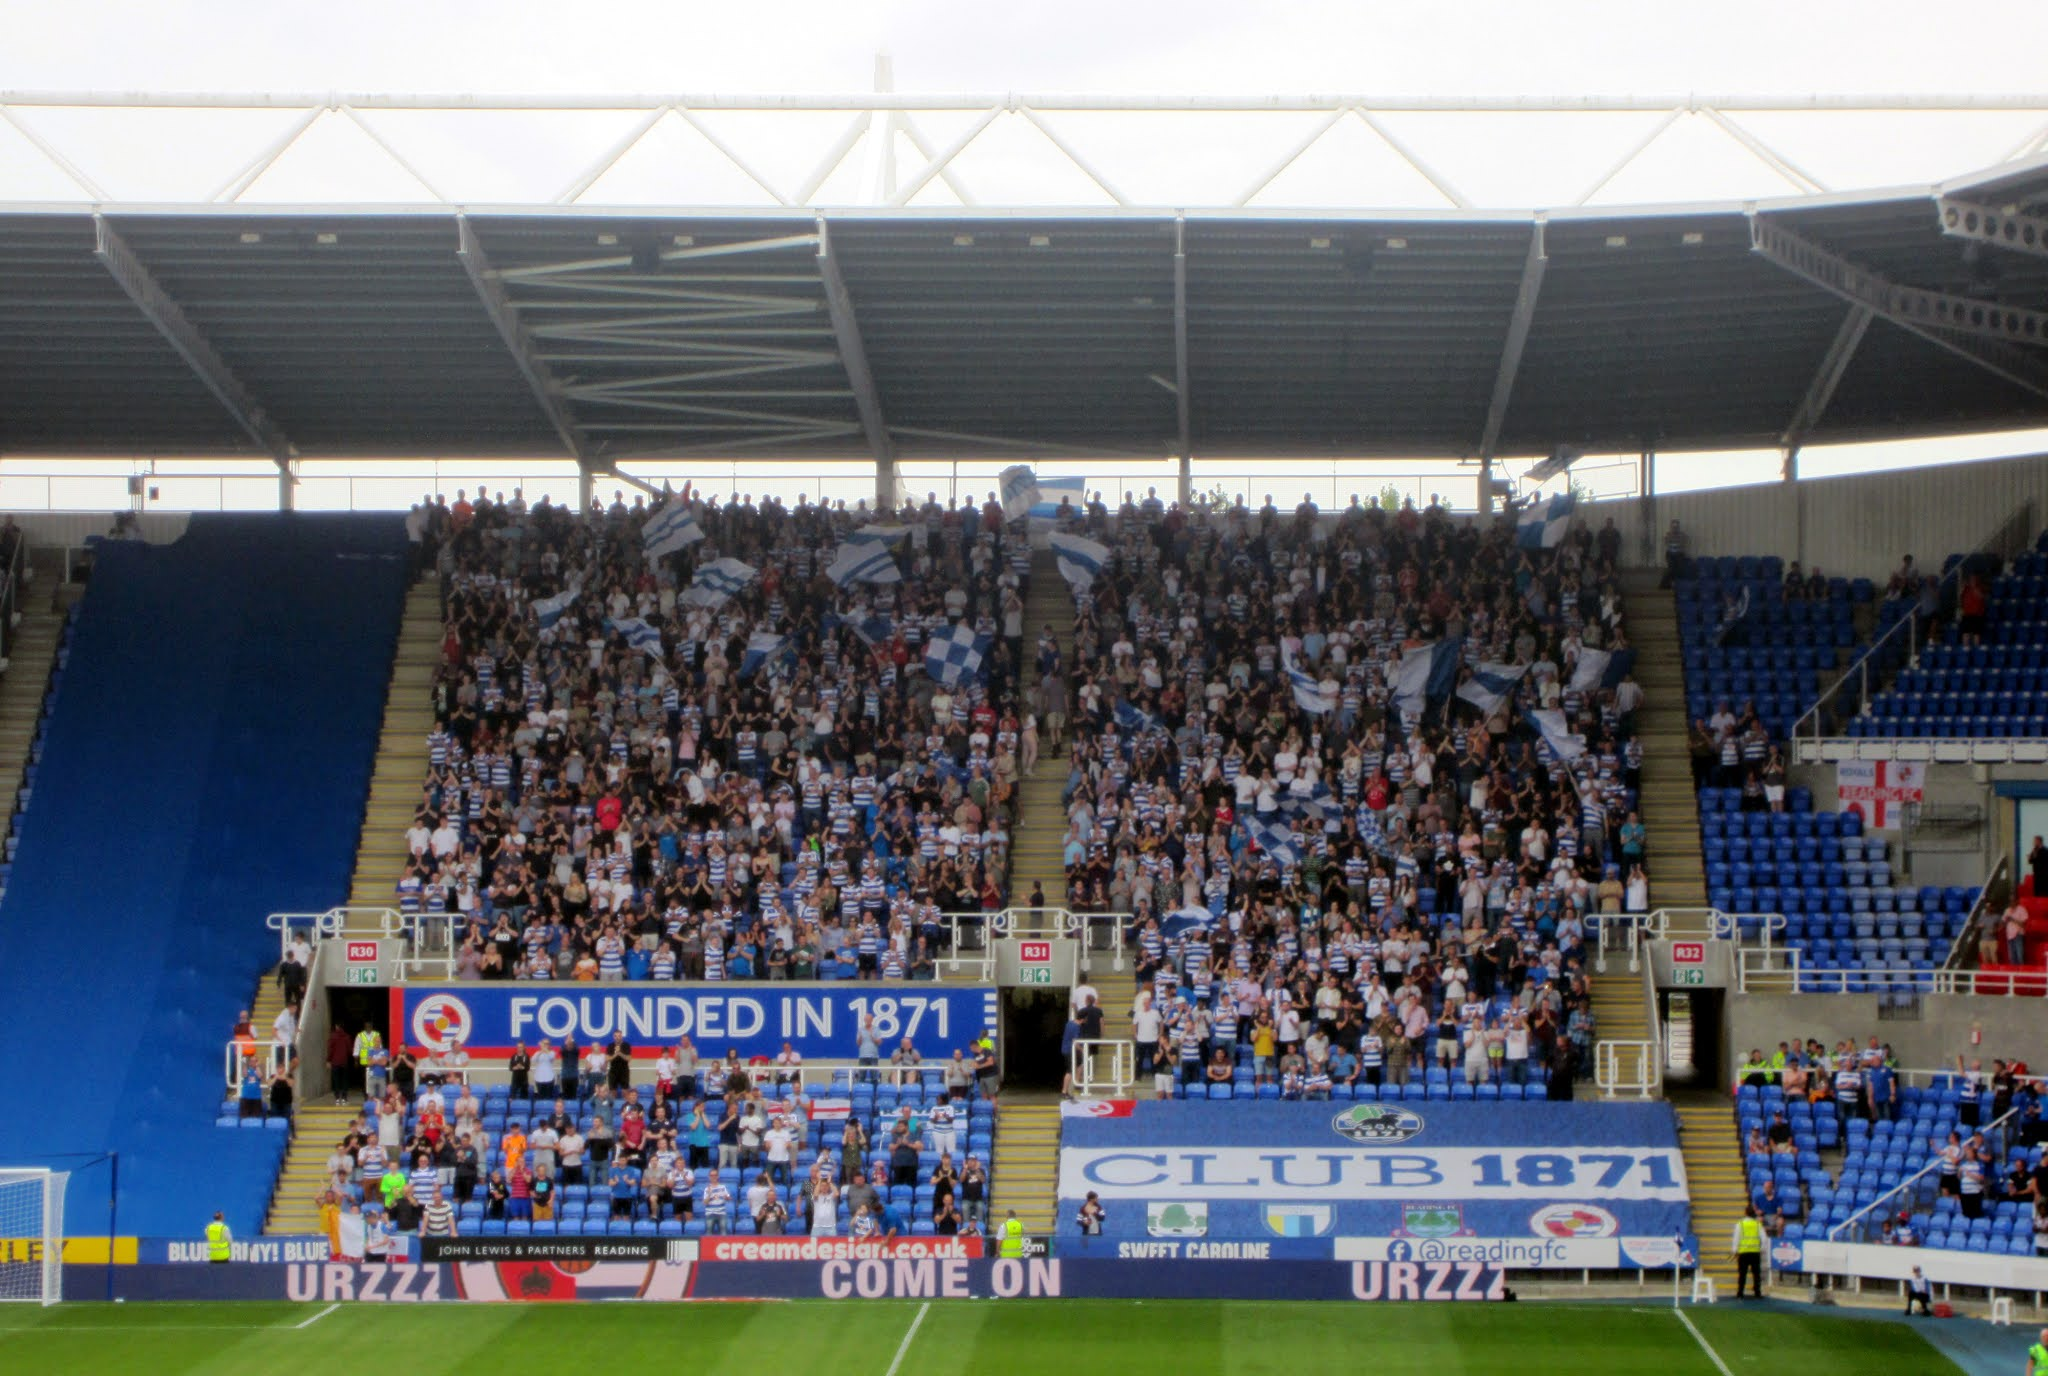 Club 1871 in the South Stand at Madejski Stadium